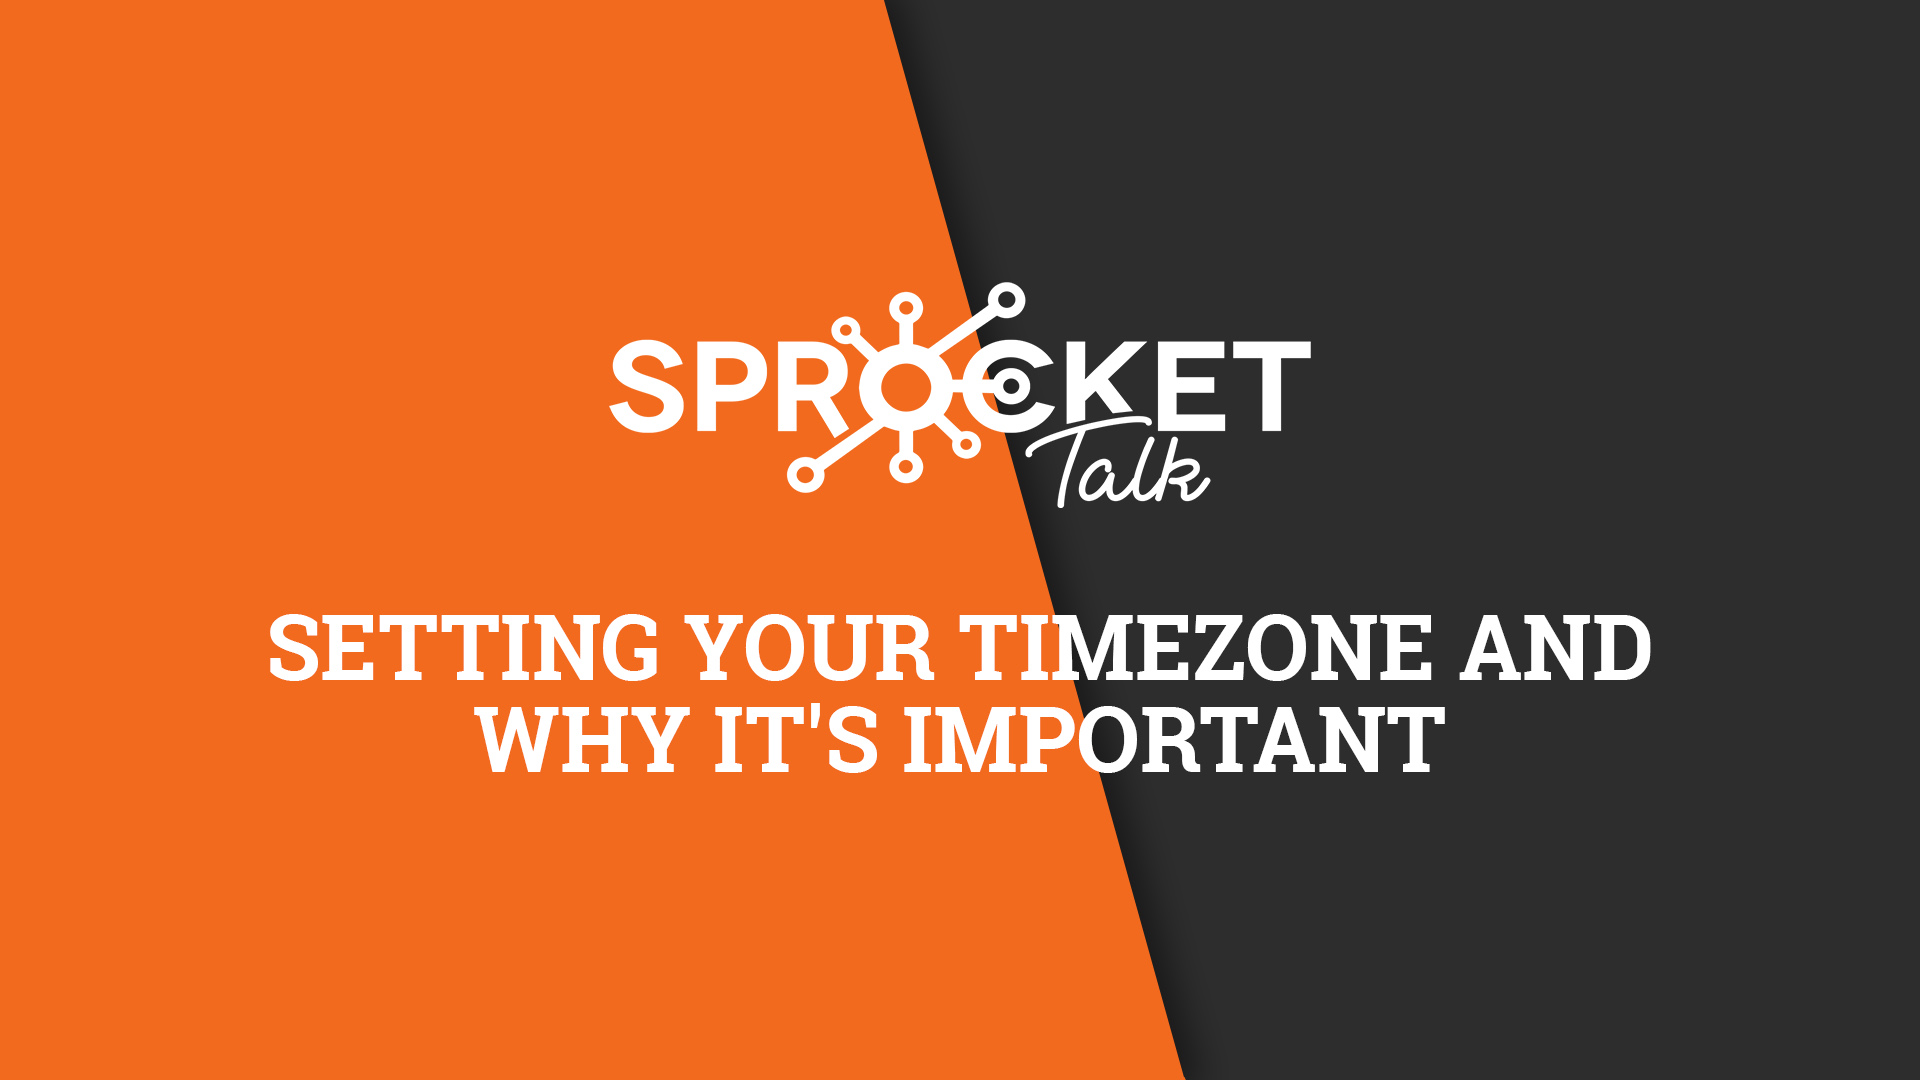 Setting Your Timezone and Why It's Important